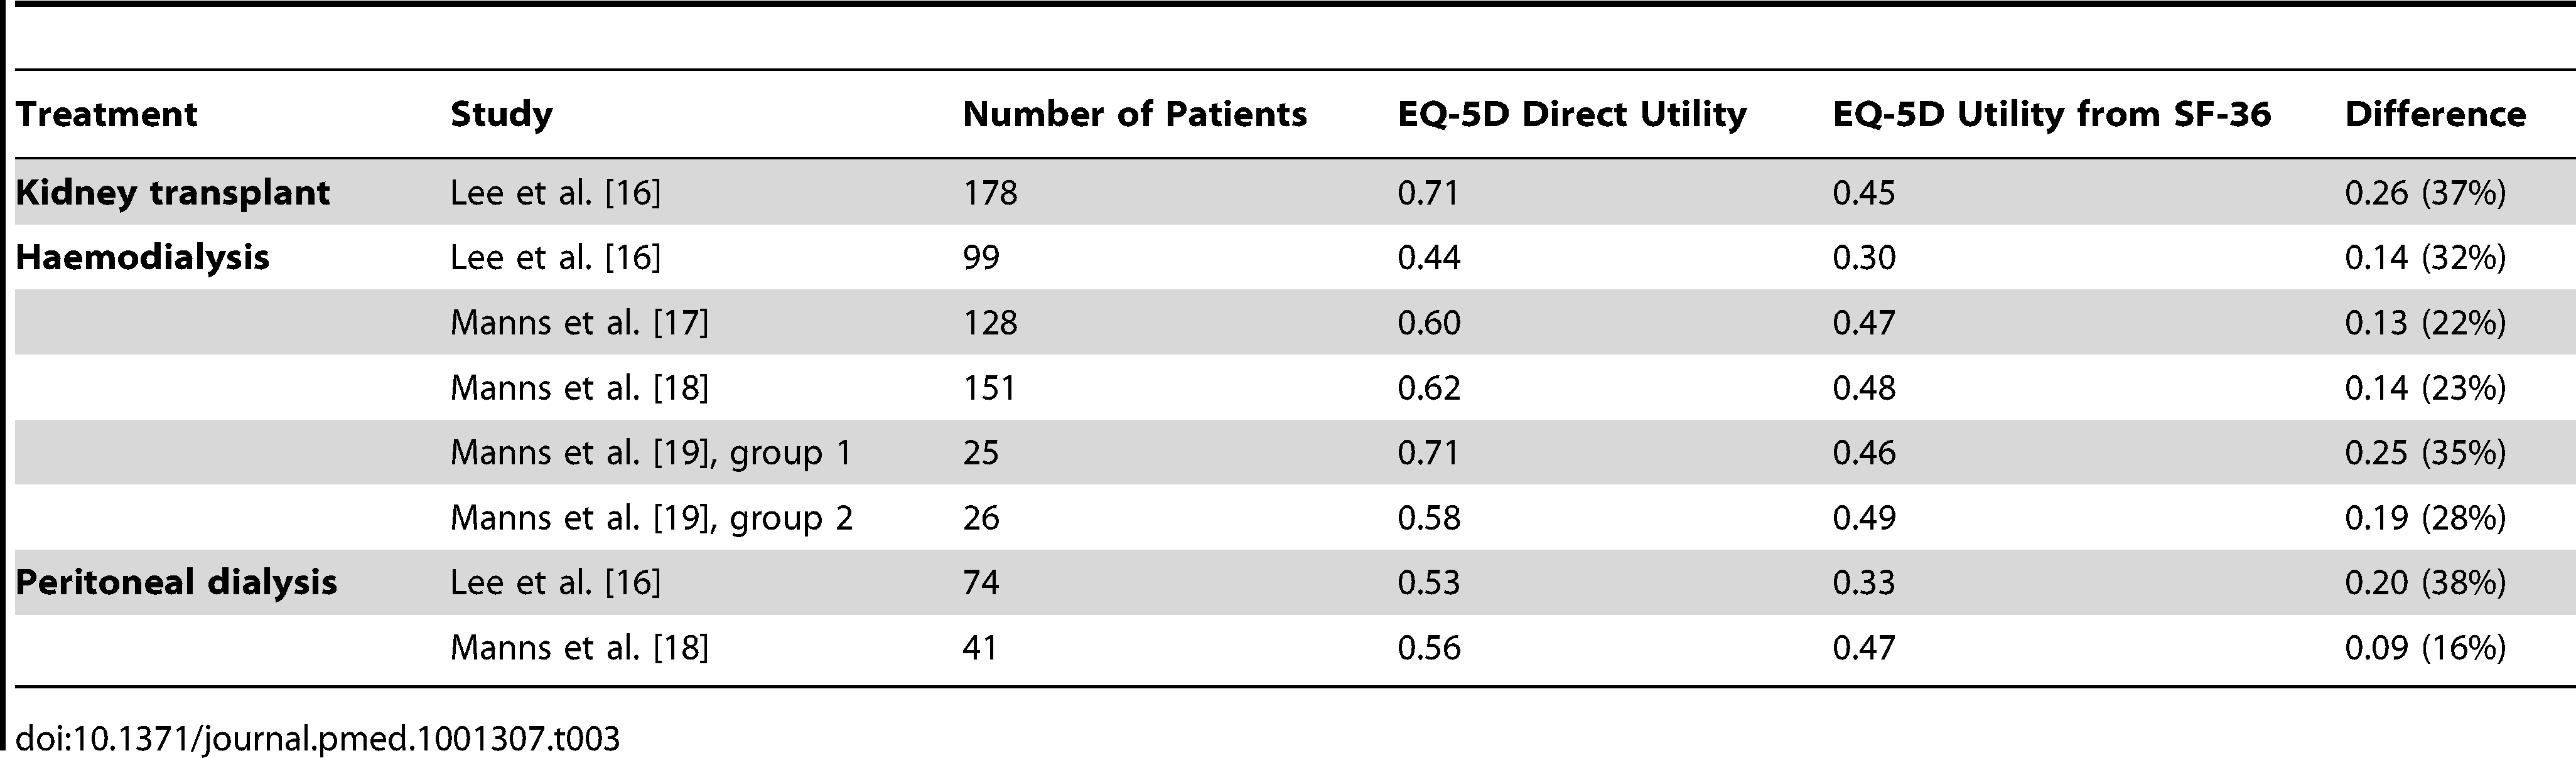 EQ-5D utility estimates reported directly and calculated from SF-36 for the same patient population.